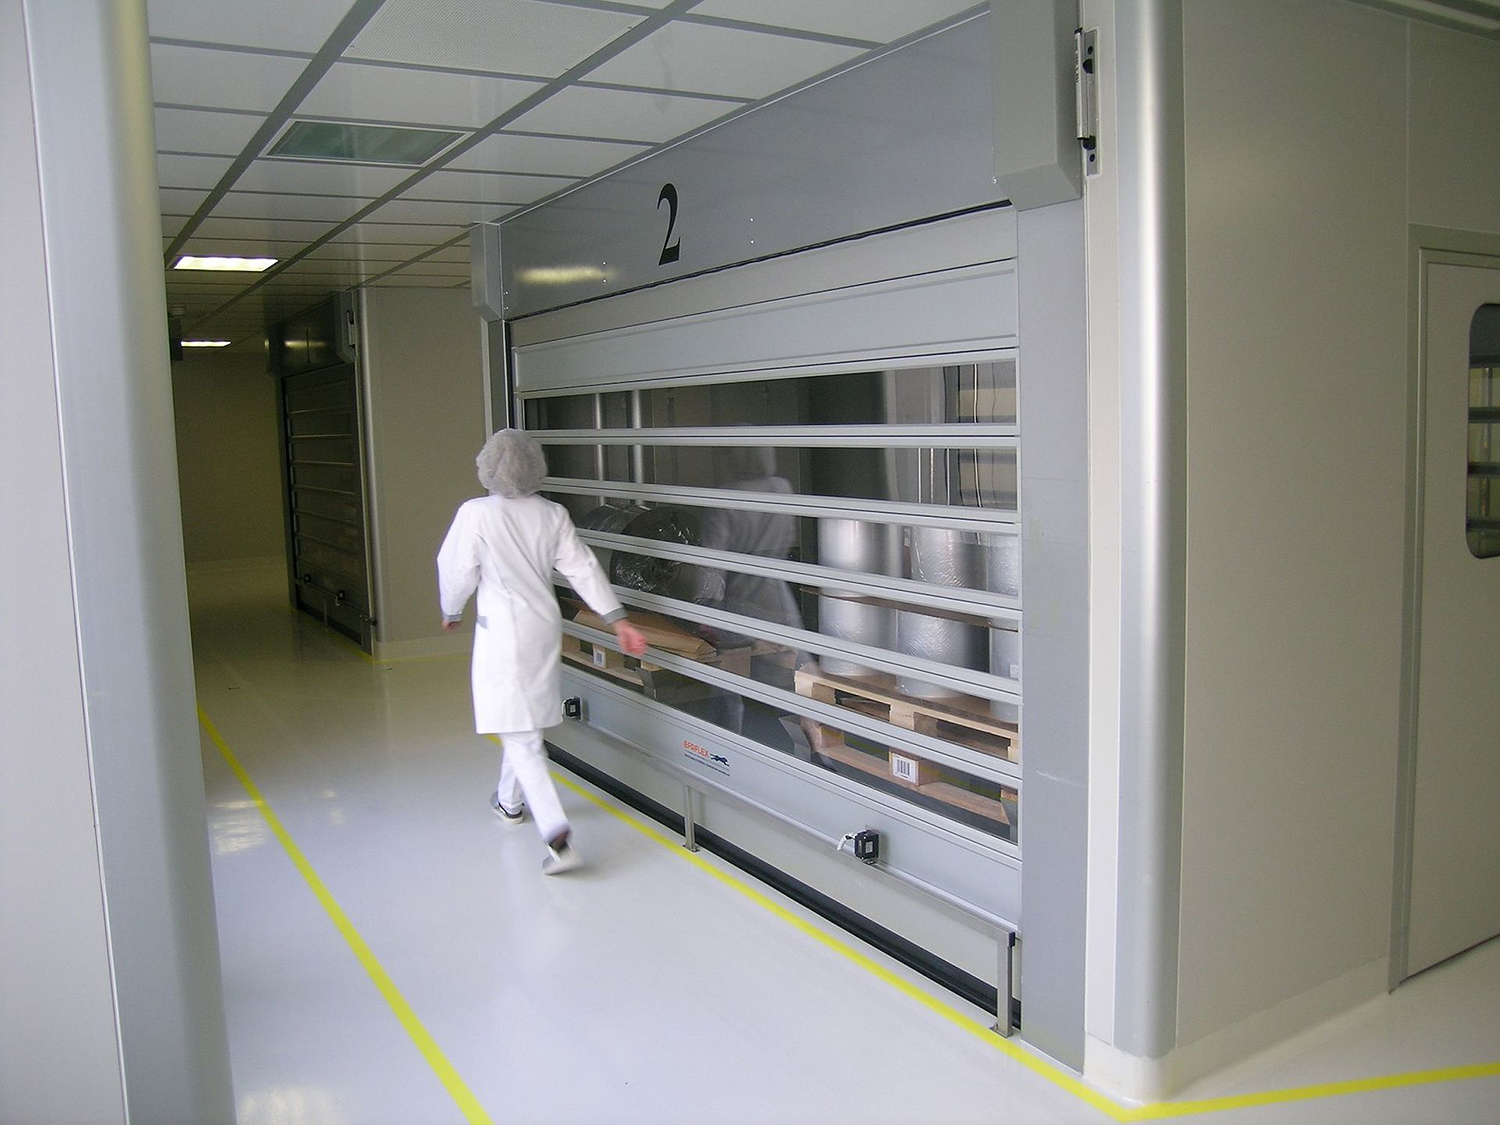 EFAFLEX high-speed doors, now in 3D